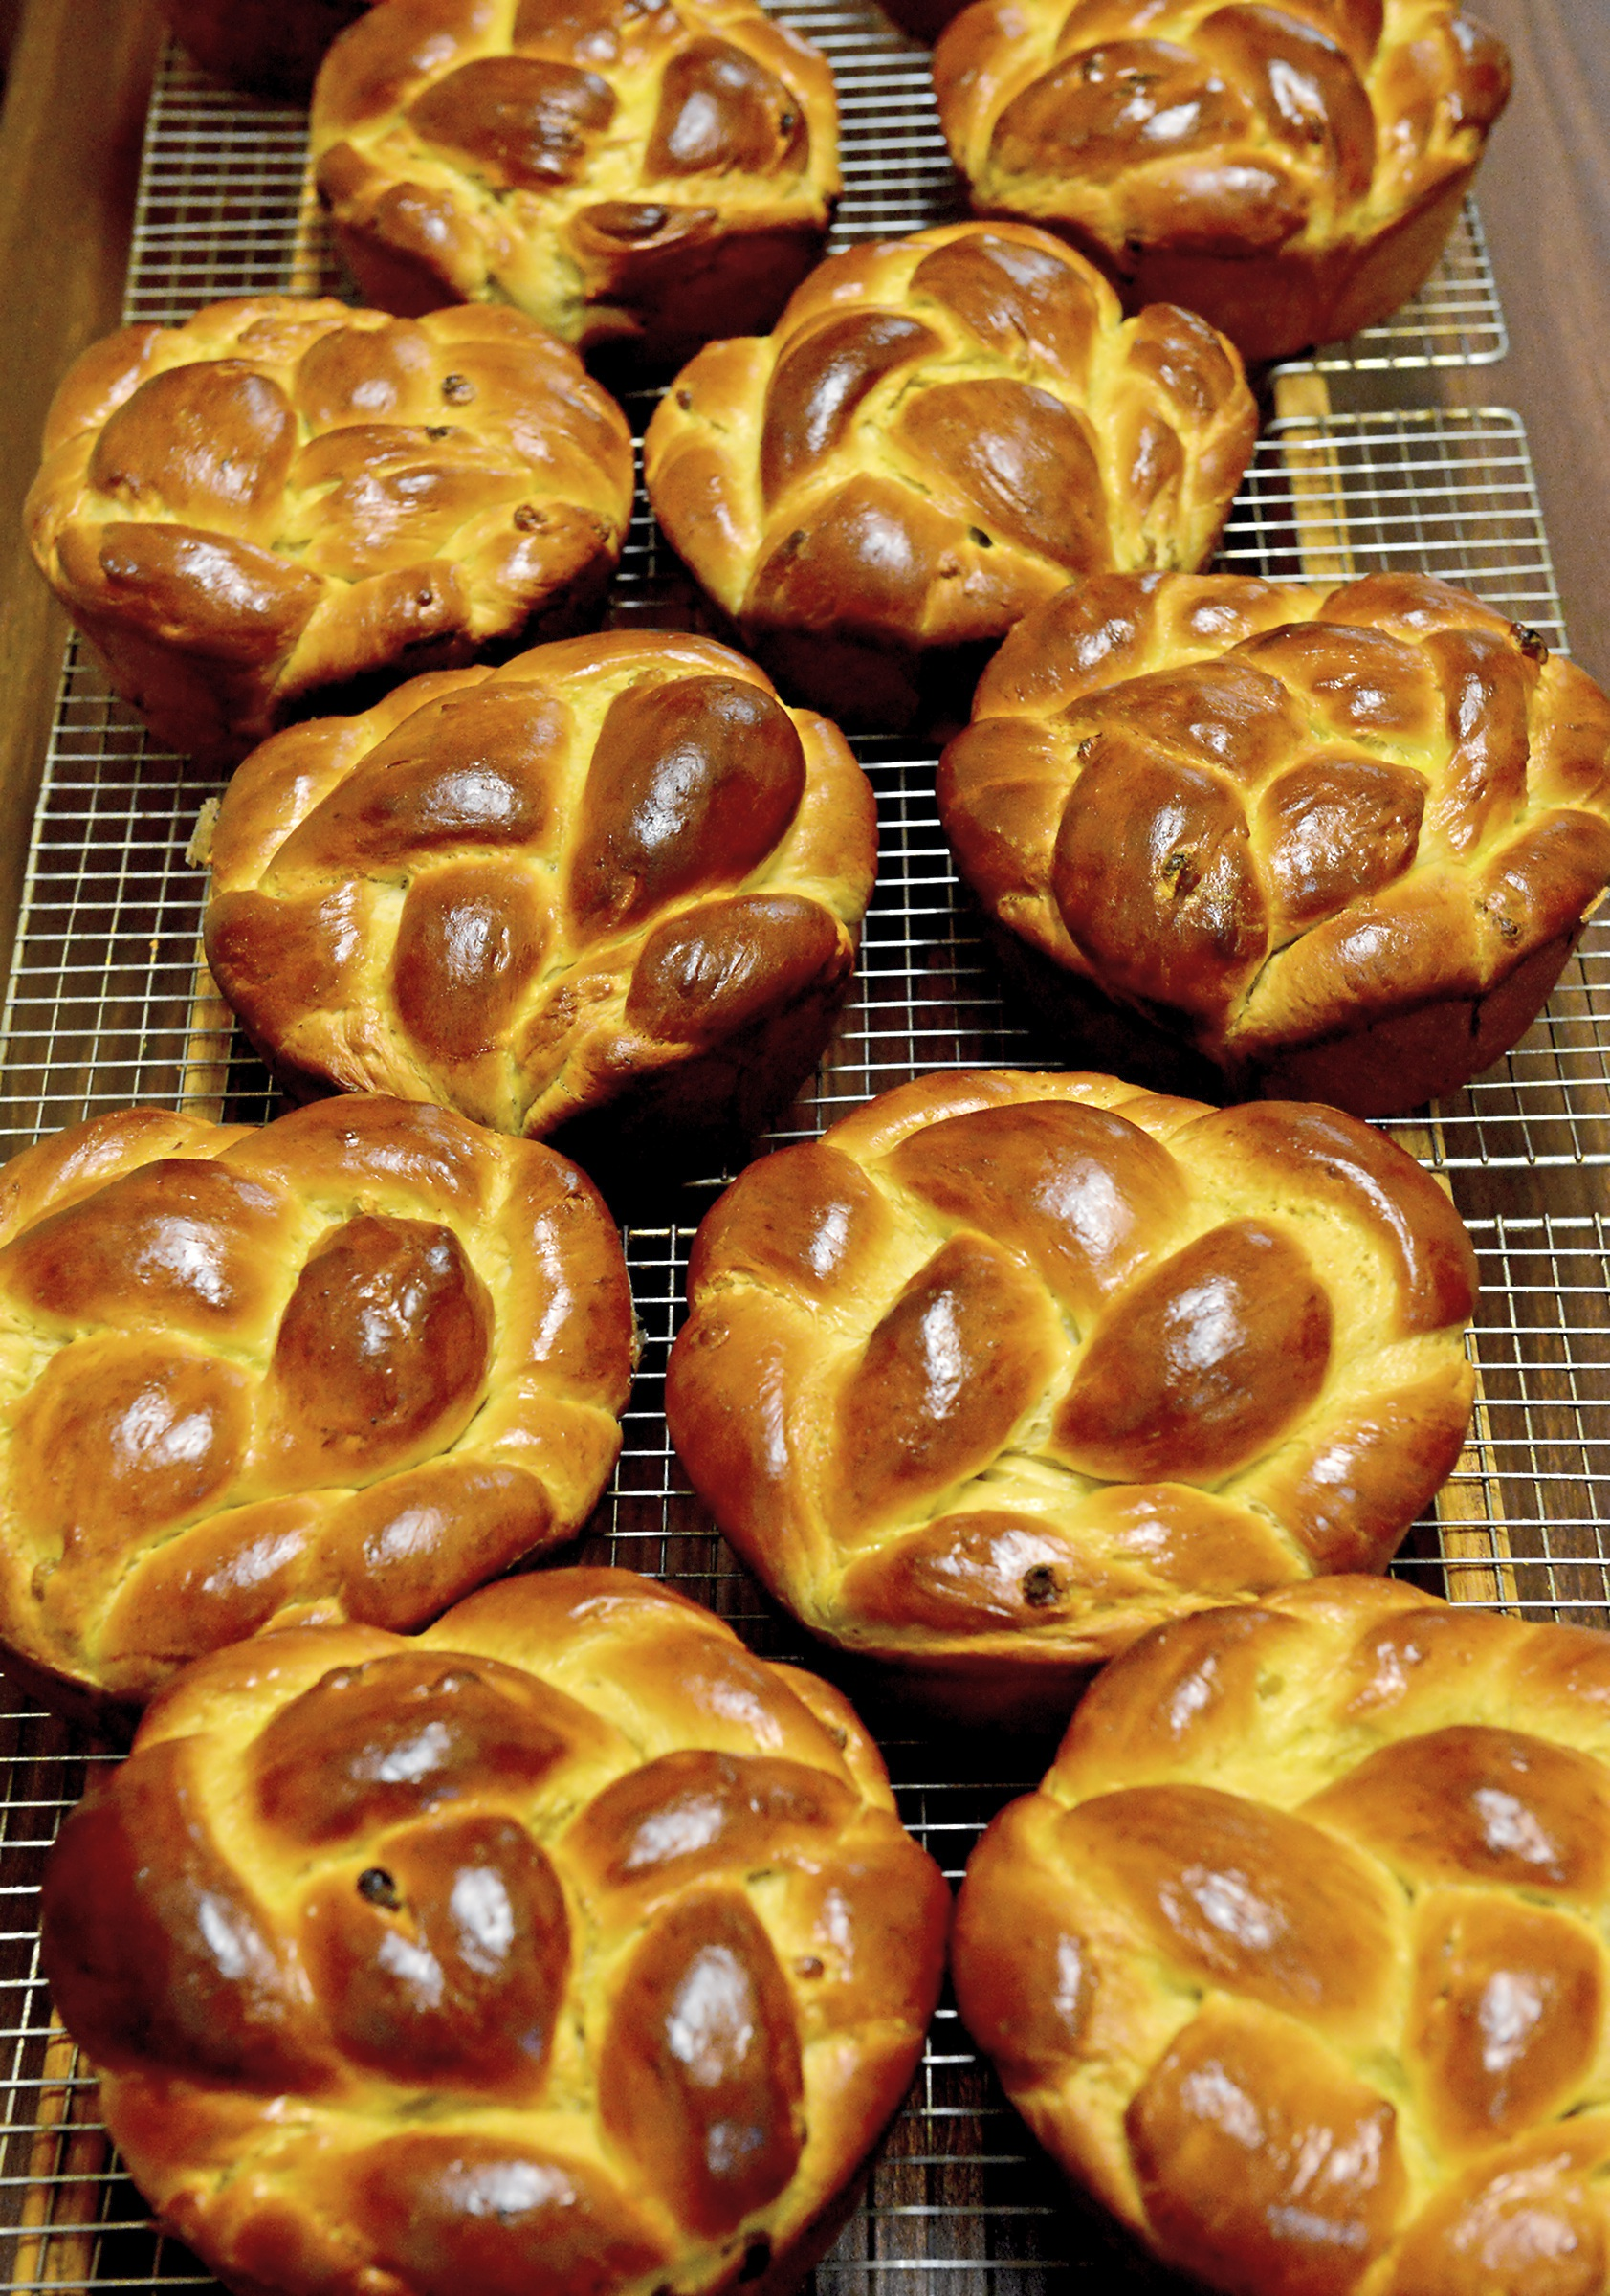 Finding God And Community In A Loaf Of Easter Bread Gretchen Mckay